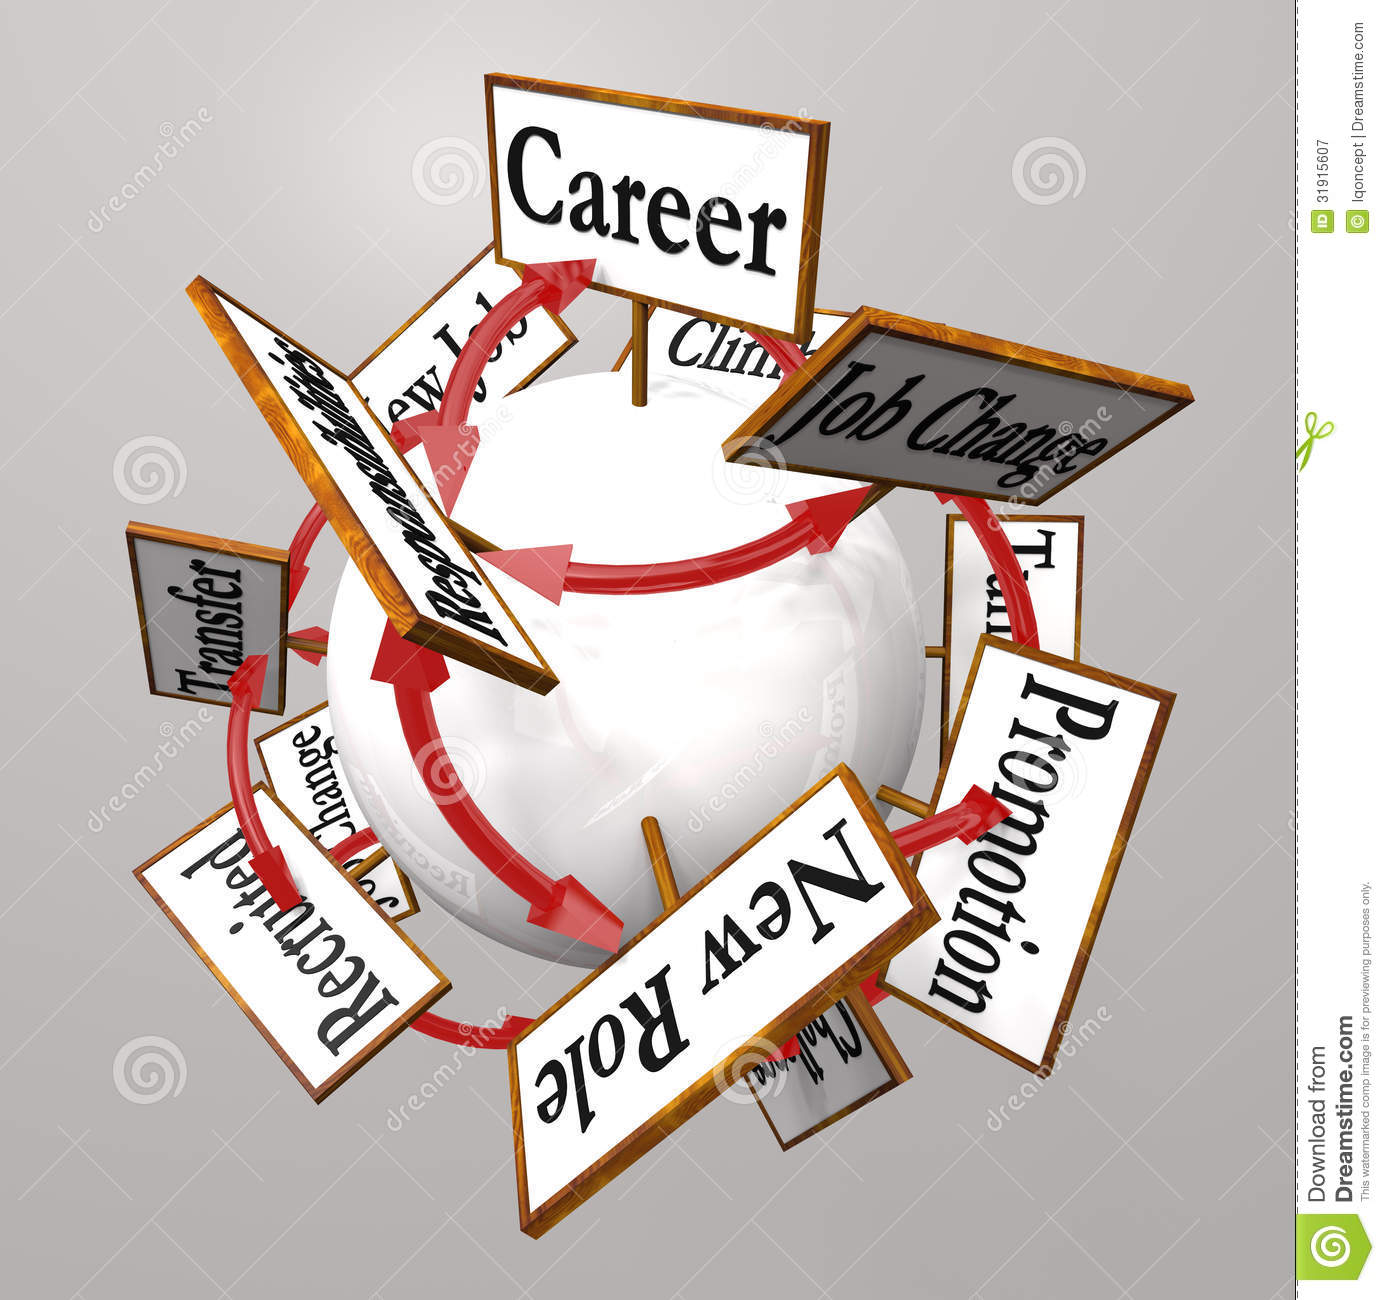 new job clipart clipart kid congratulations new job clipart career signs professional job